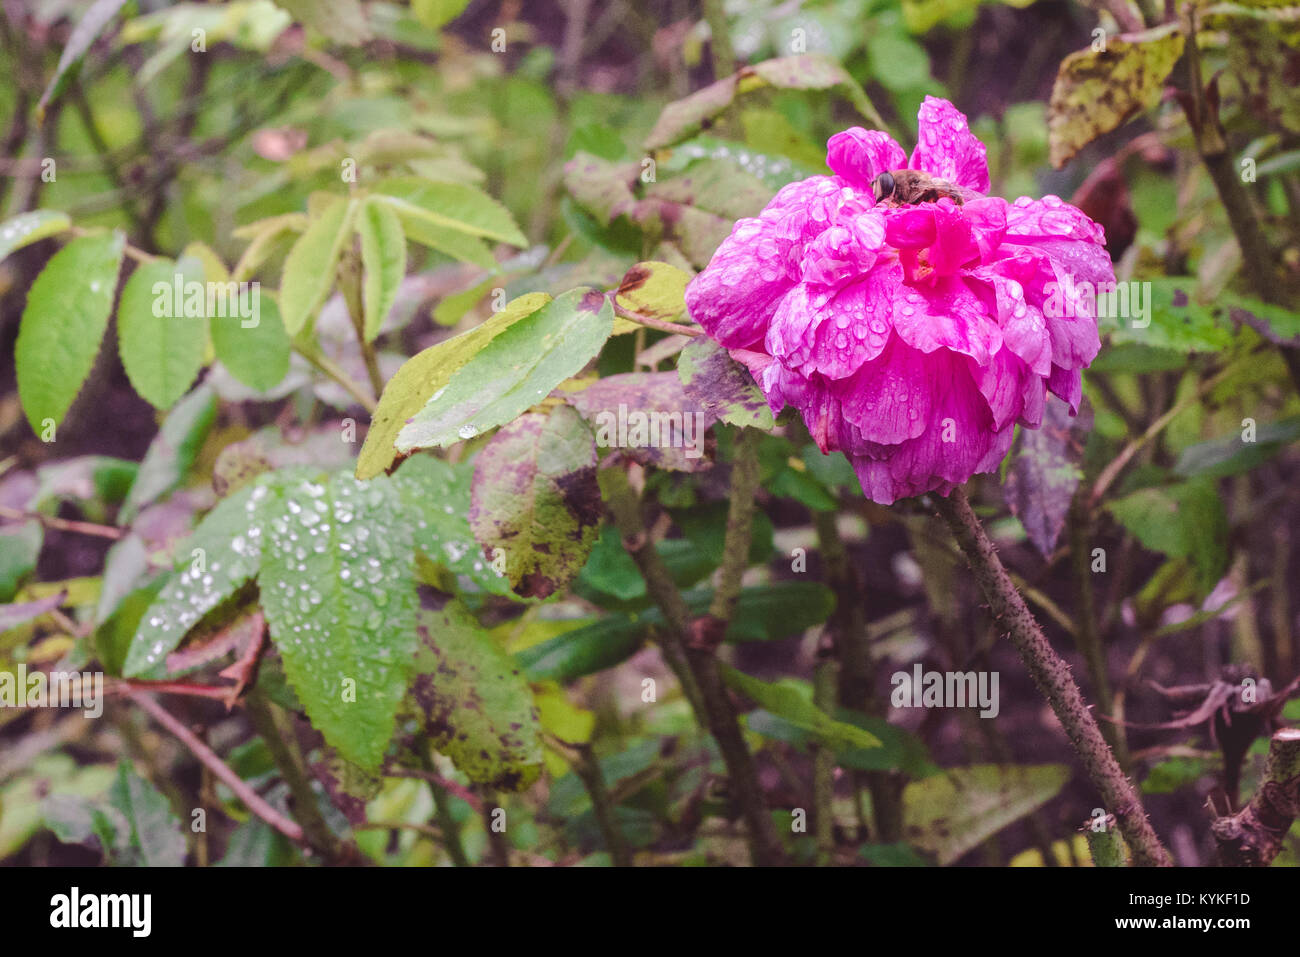 Purple flower with a wasp in a garden after the rain with droplets on the leaves - Stock Image